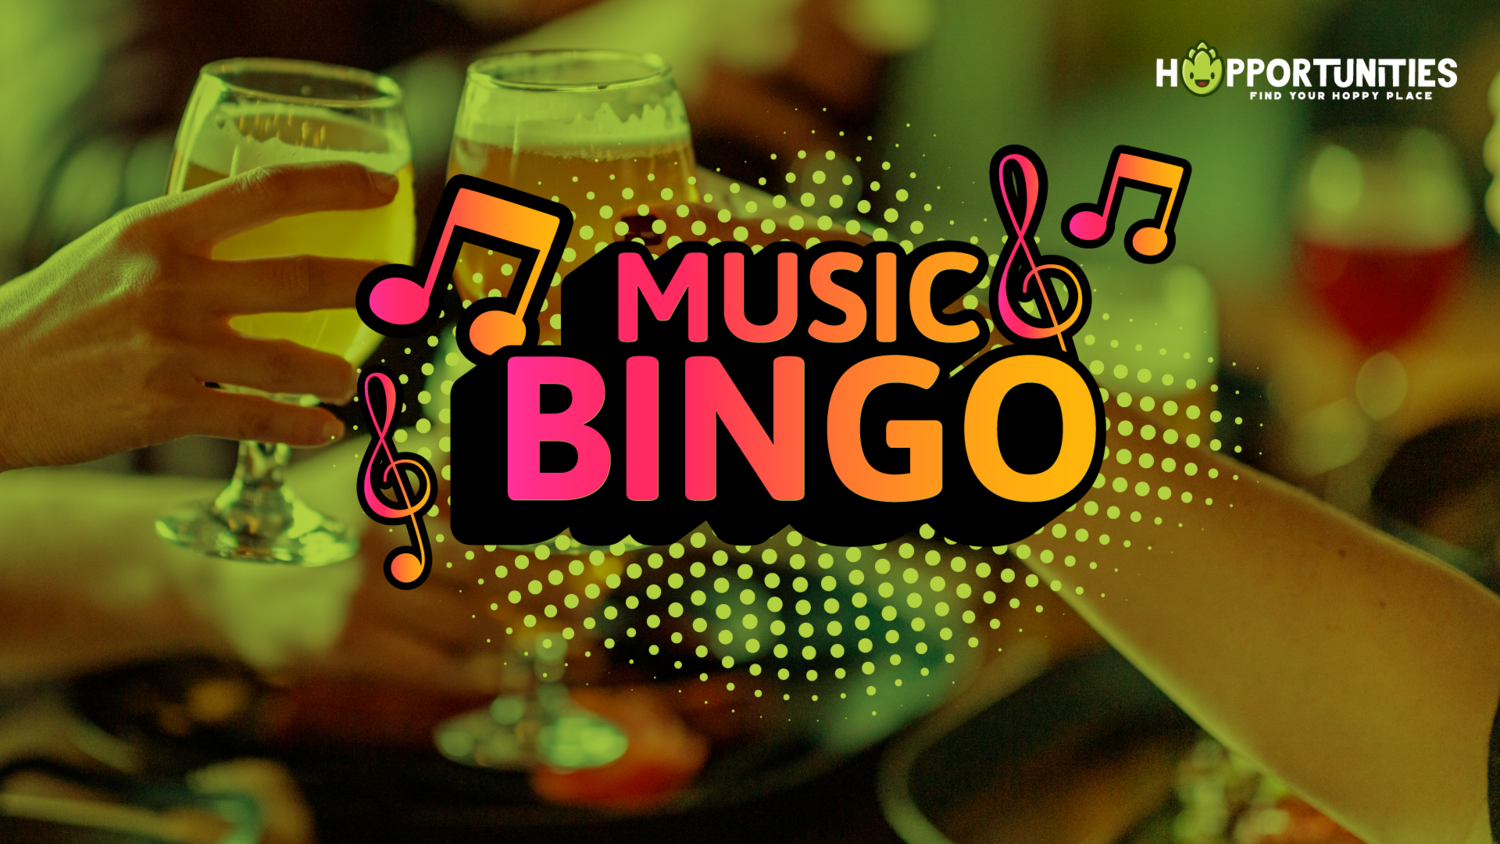 Thursday Virtual Music Bingo:  Check the dates you want to Play